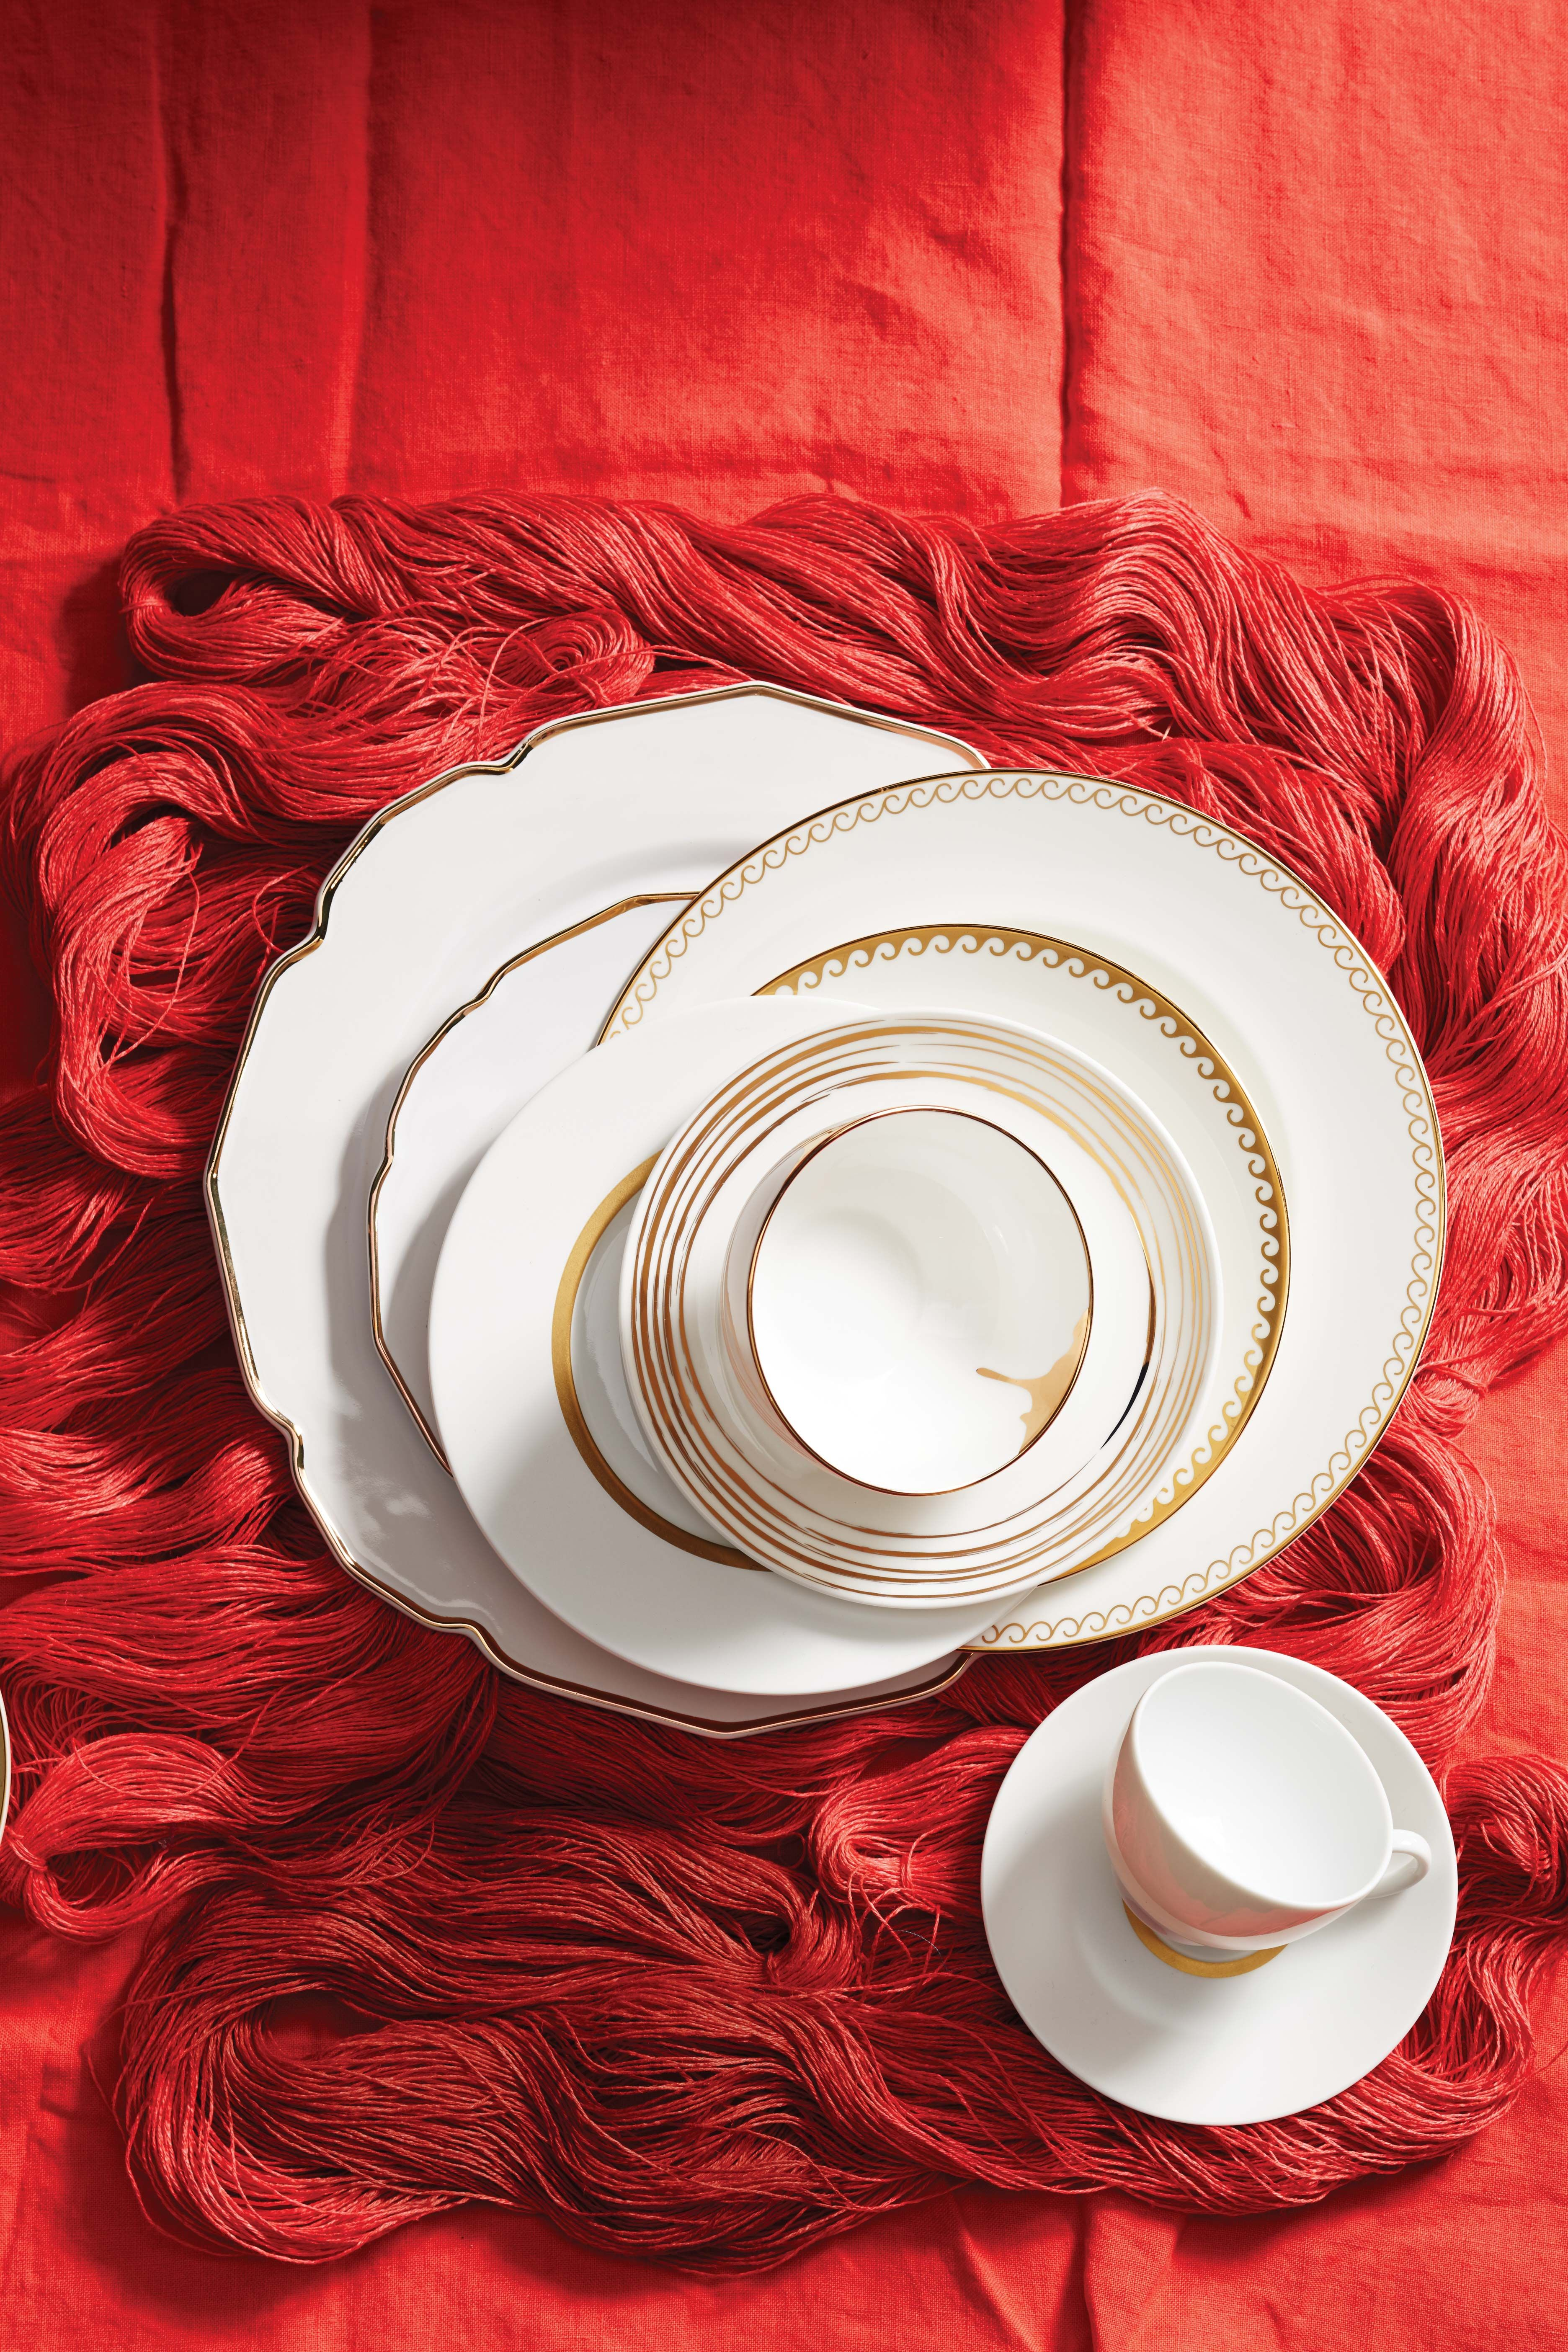 Get inspired by these ivorythemed anniversary gifts. The